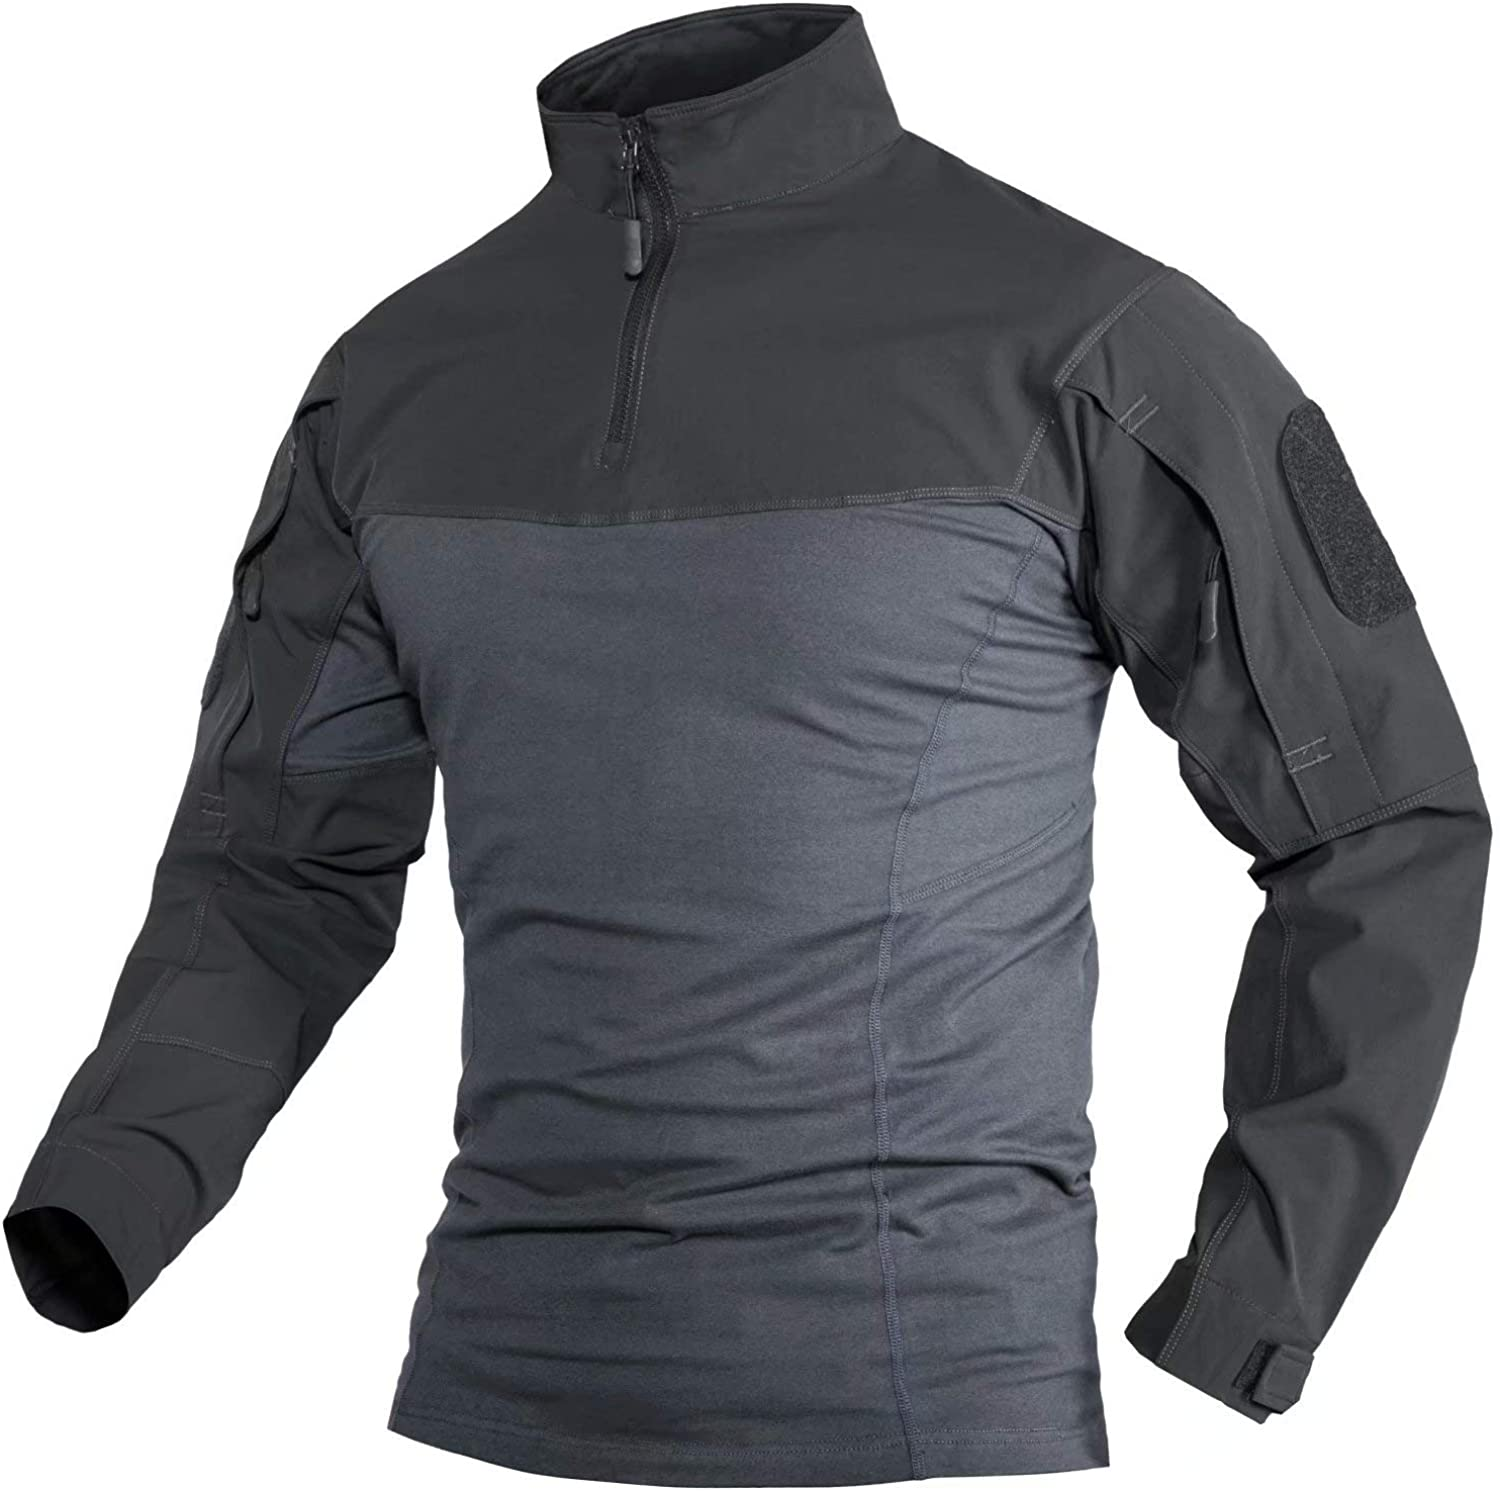 MAGCOMSEN Max 88% OFF Men's 1 4 Zip Front Military with Zipp Shirts New life Tactical